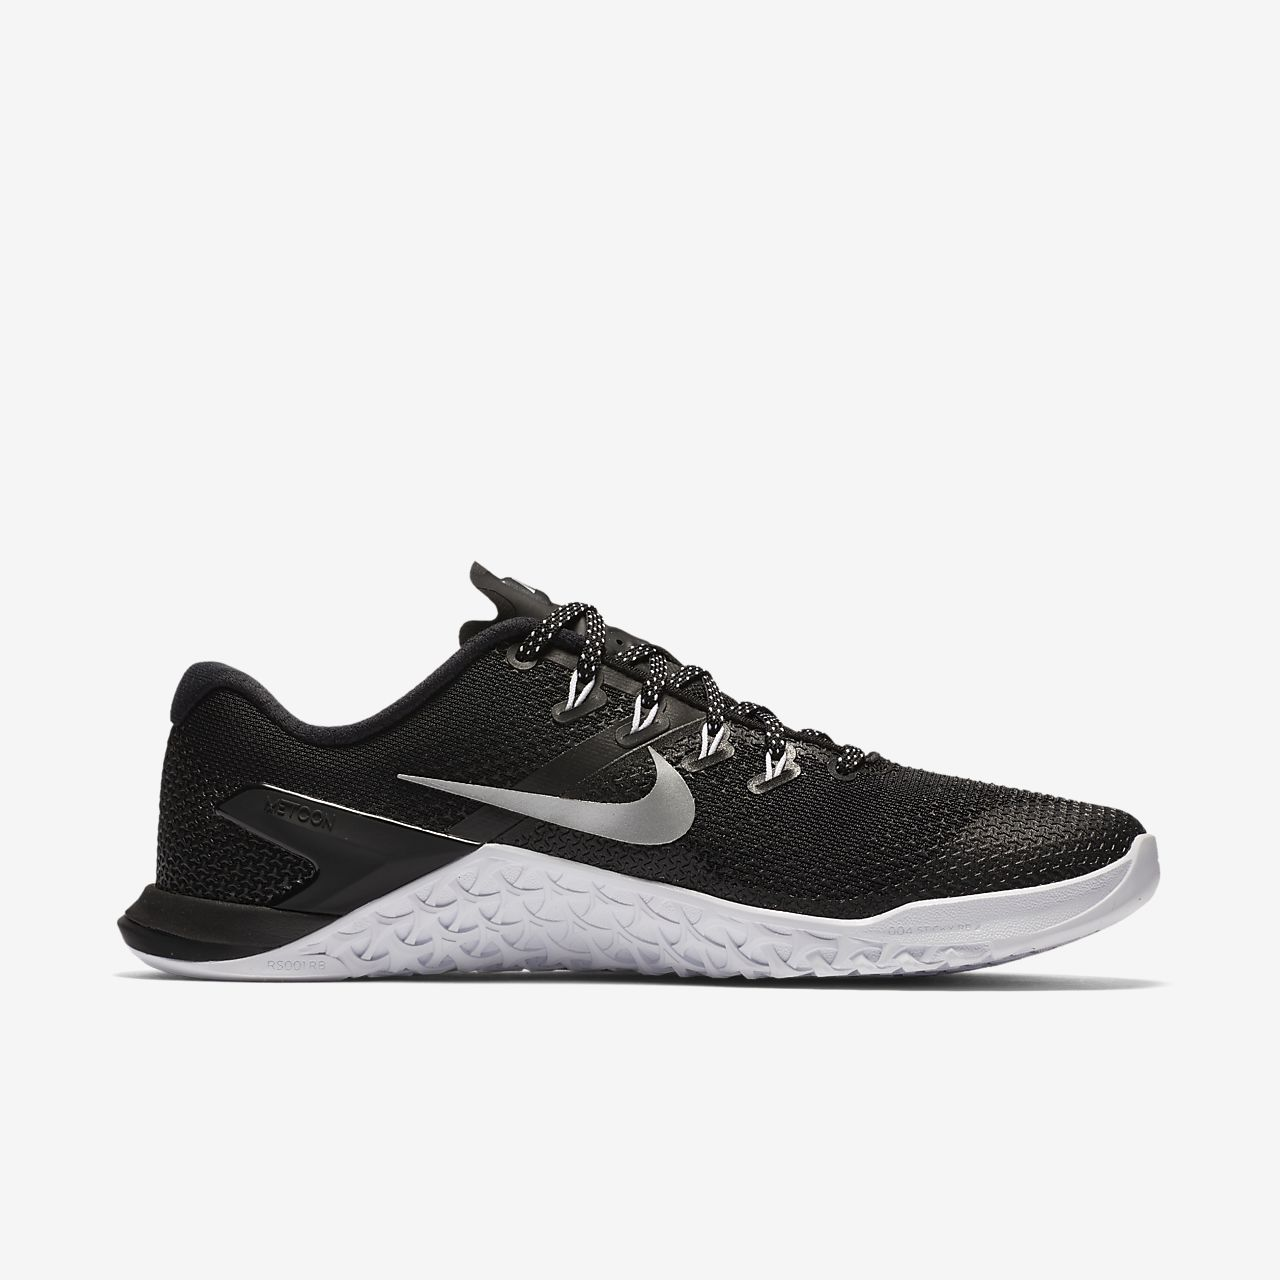 d5db935b7a8c Women s Cross Training Weightlifting Shoe. Nike Metcon 4